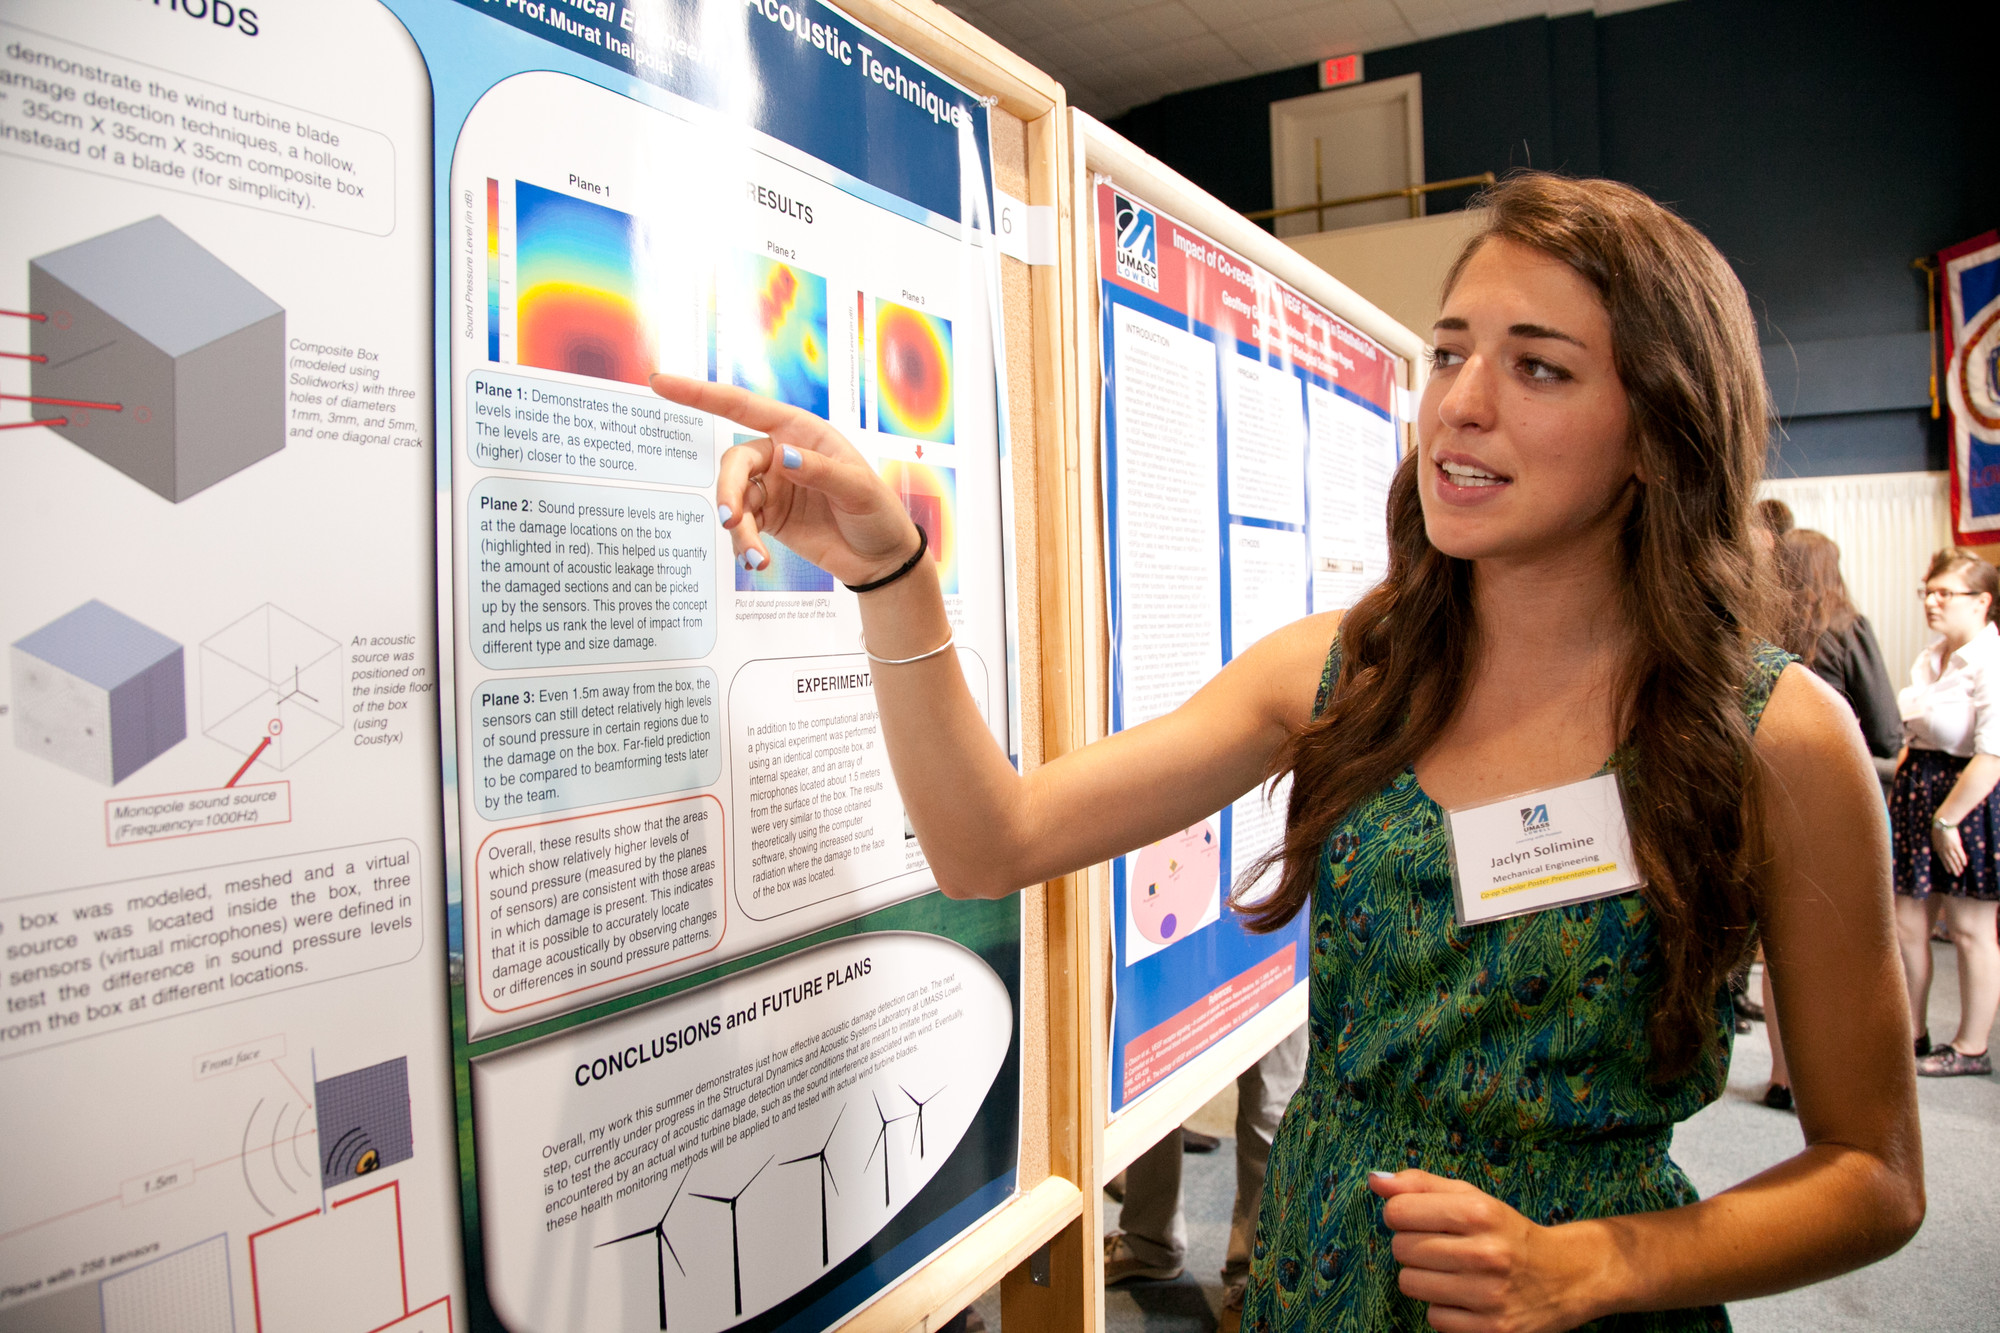 Female Graduate Student Presenting at Poster Session